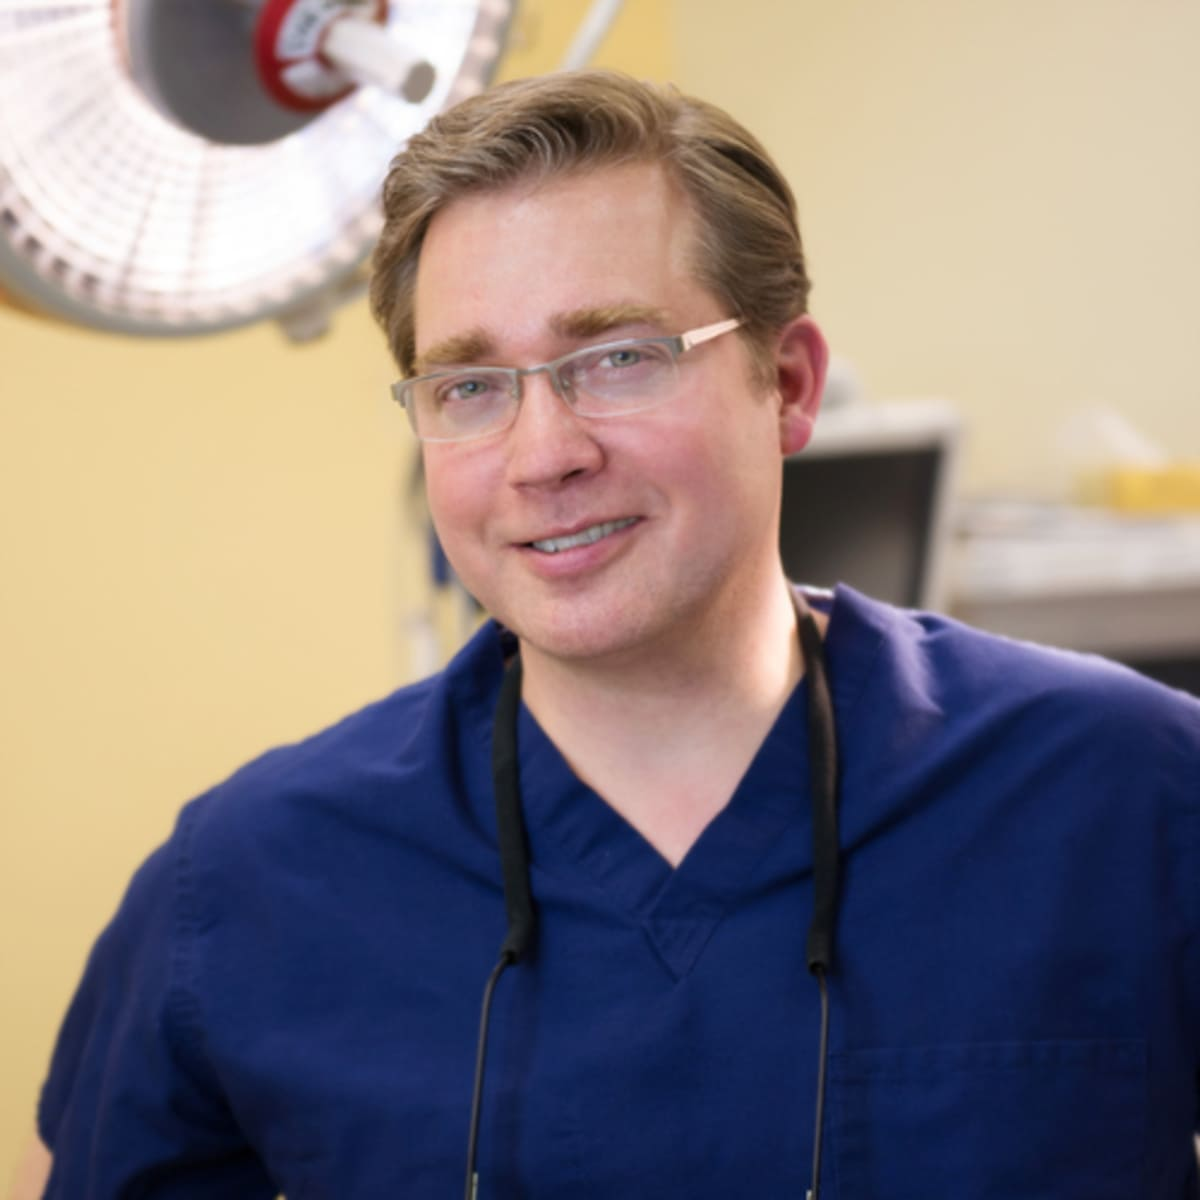 Dr. Mark Hodgson, MD